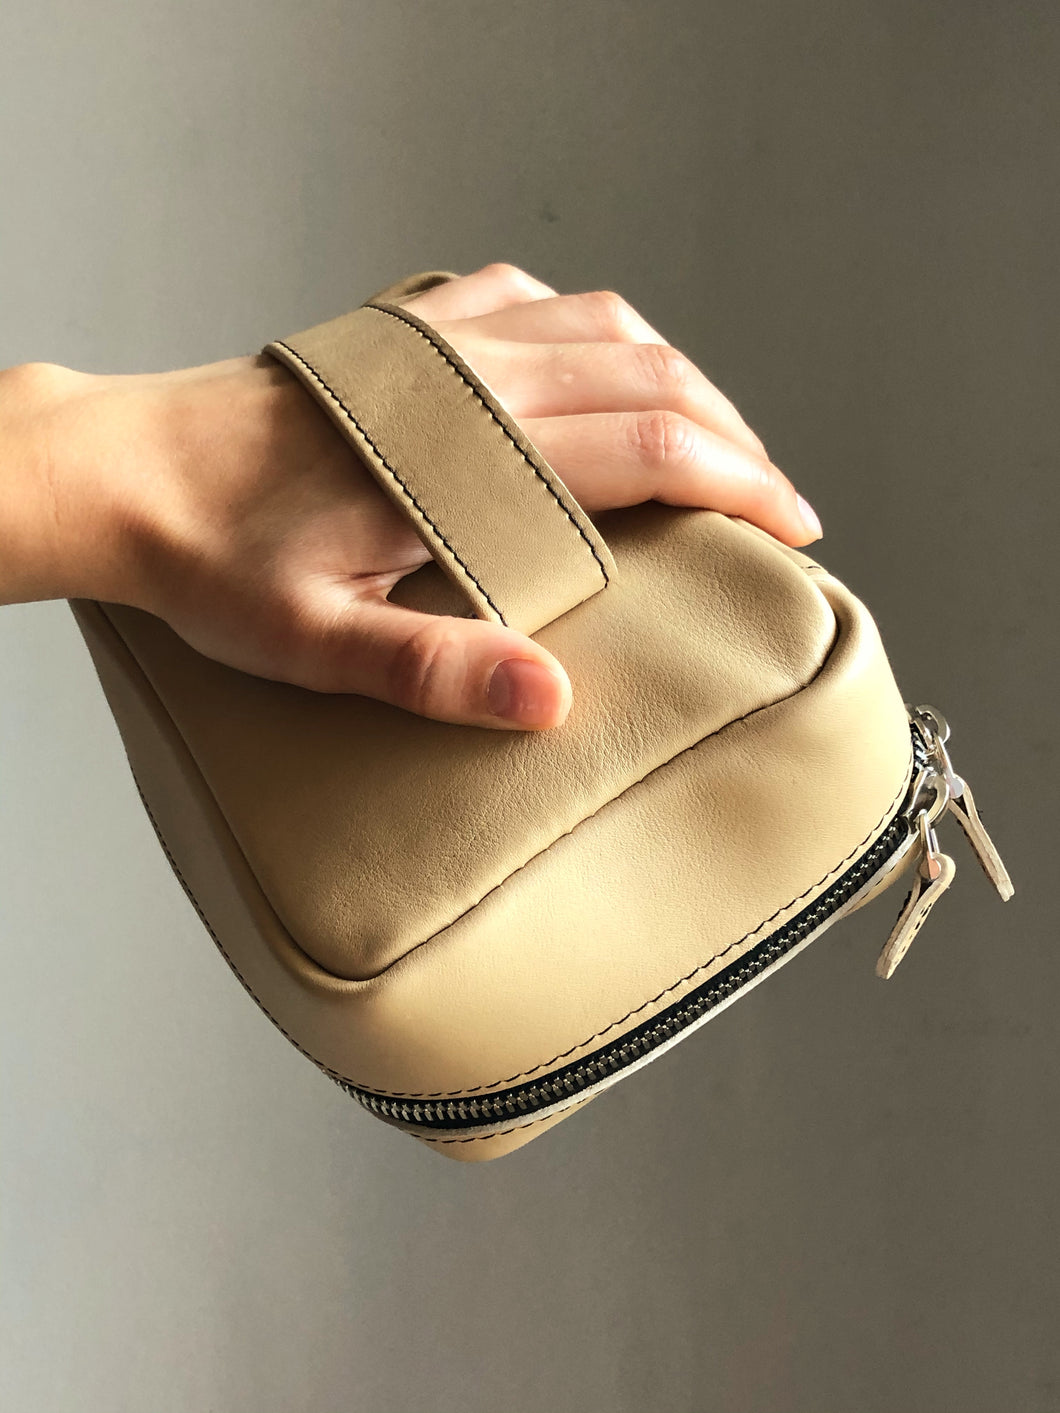 'Slick' Clutch in Beige